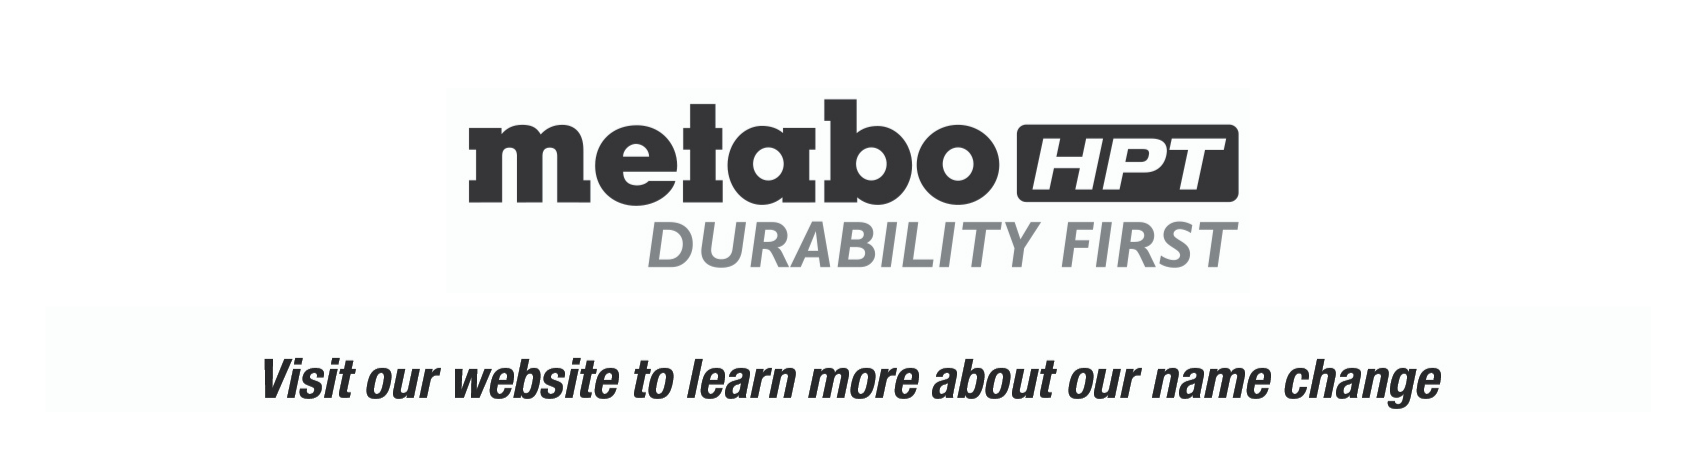 Metabo HPT Sticker Mock up_Durability